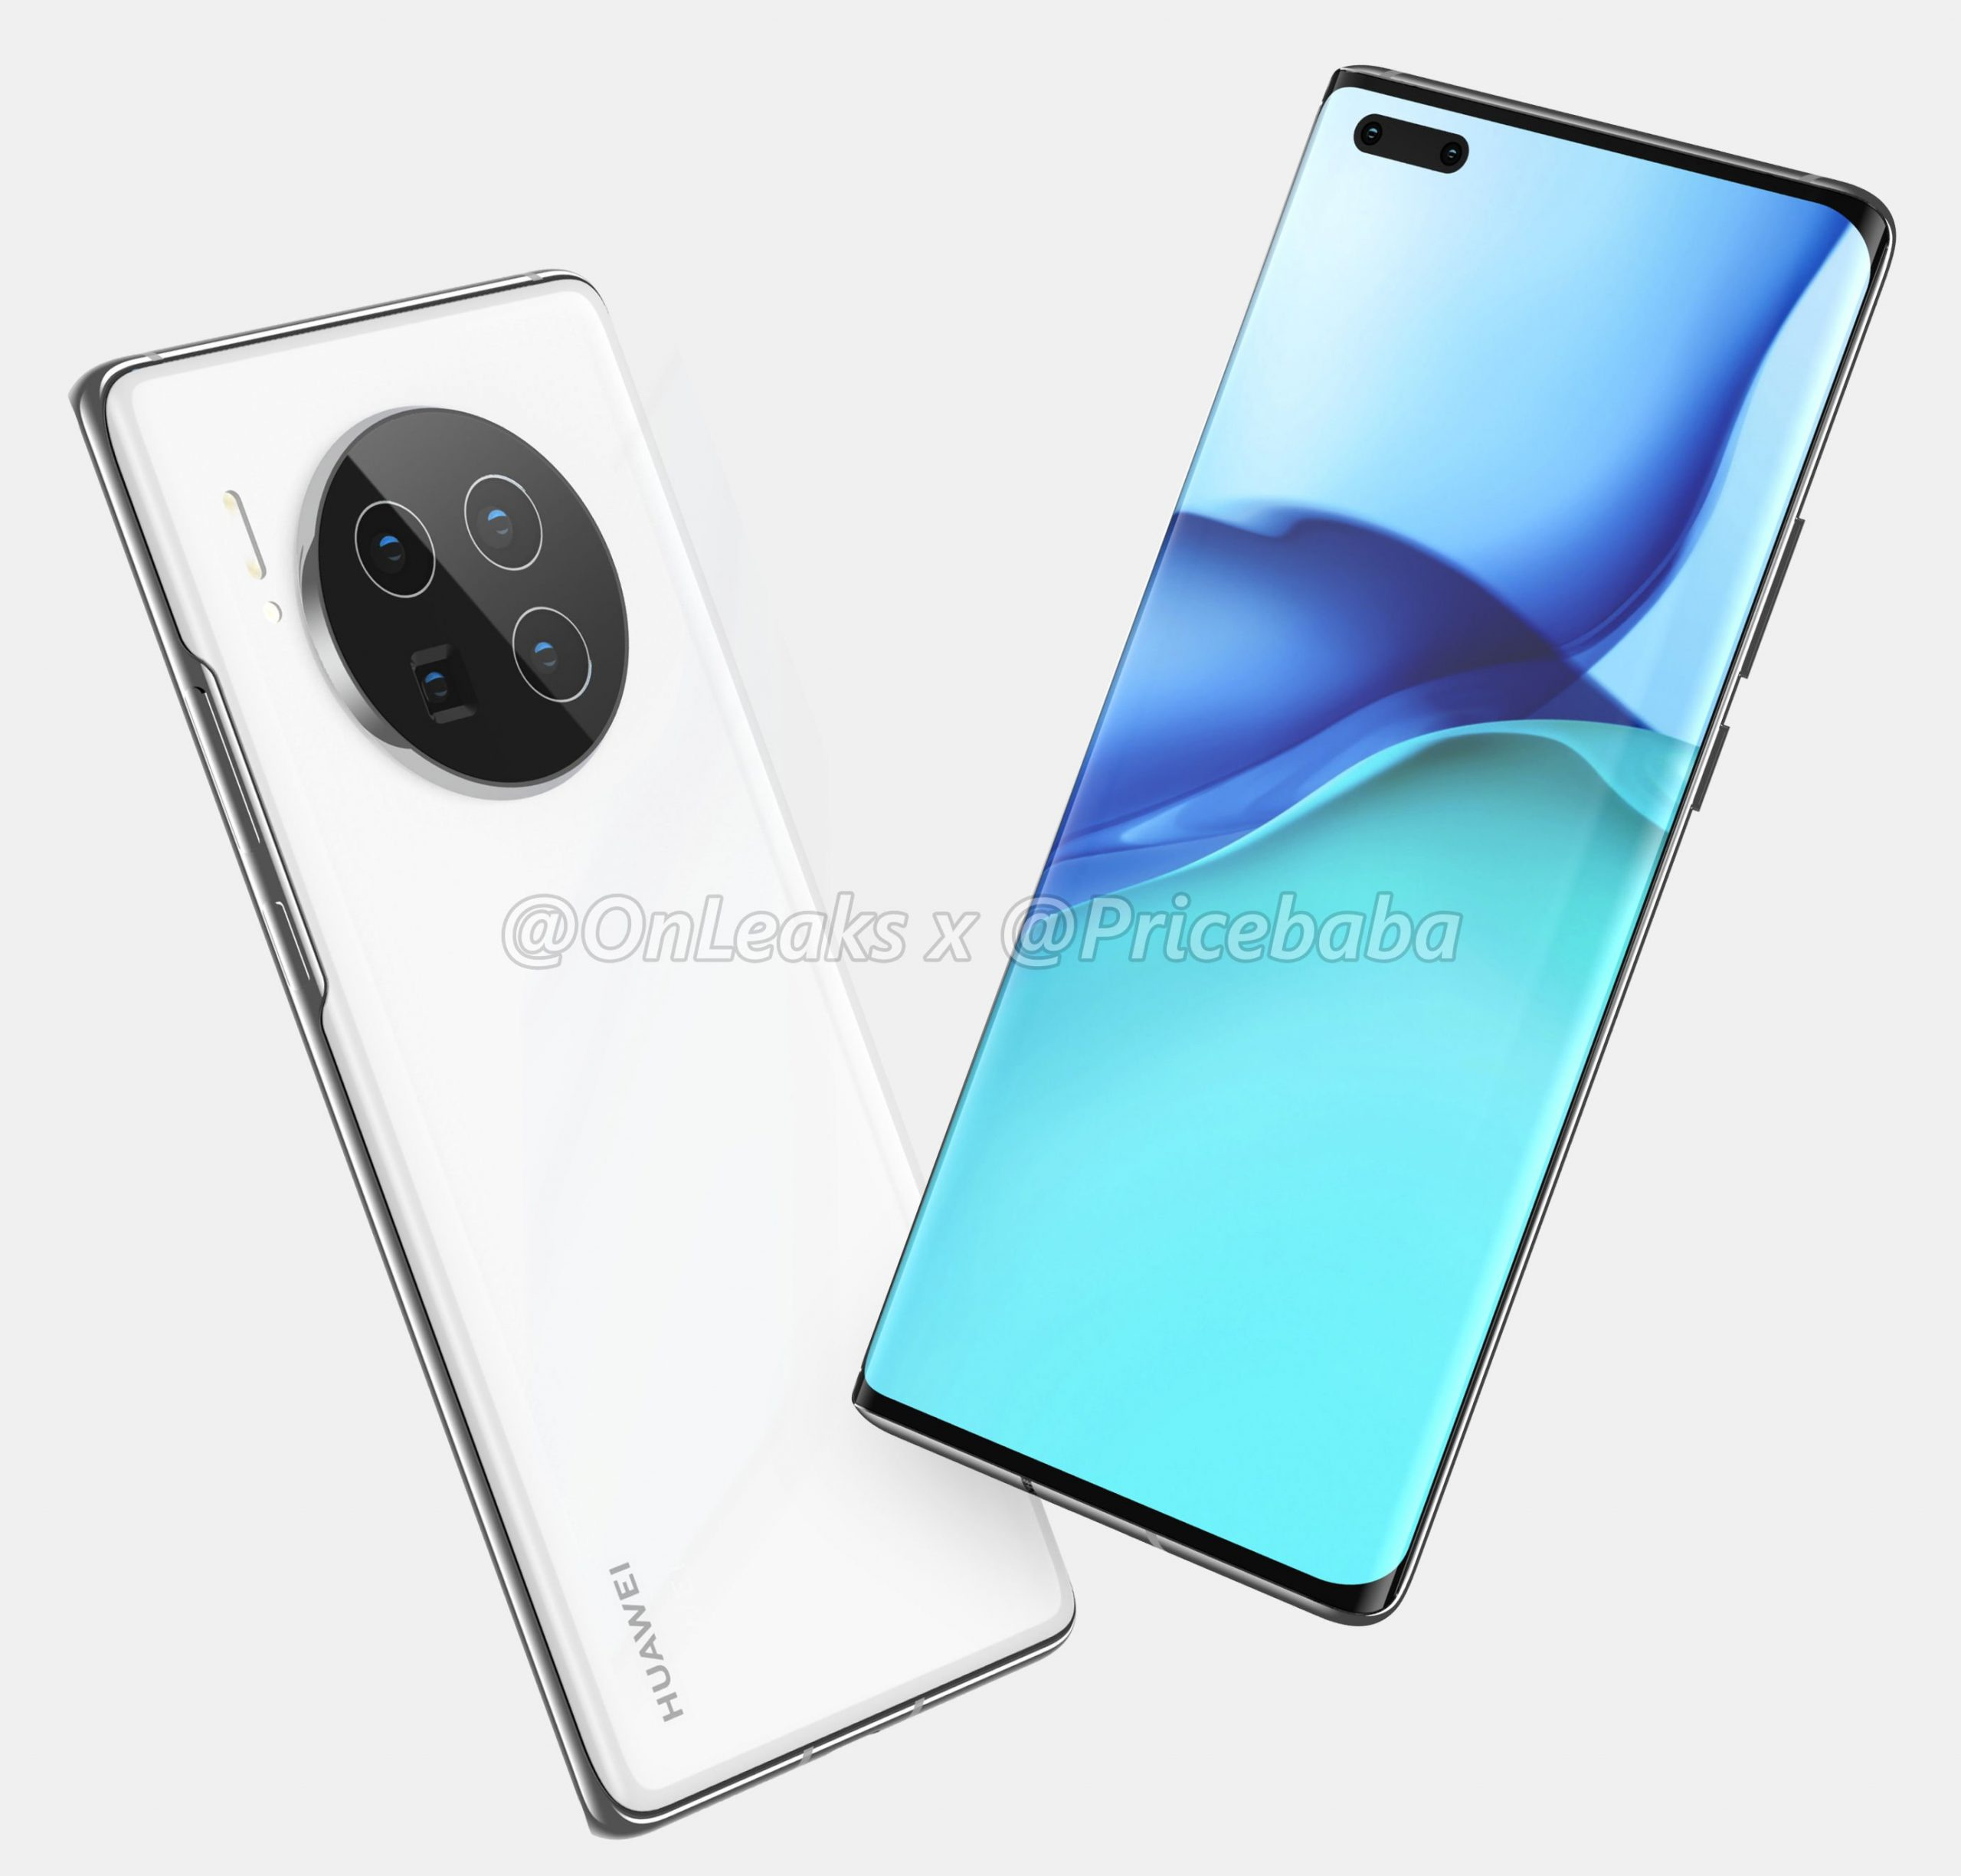 Alleged Huawei Mate 40 Pro real life images leak online ahead of launch